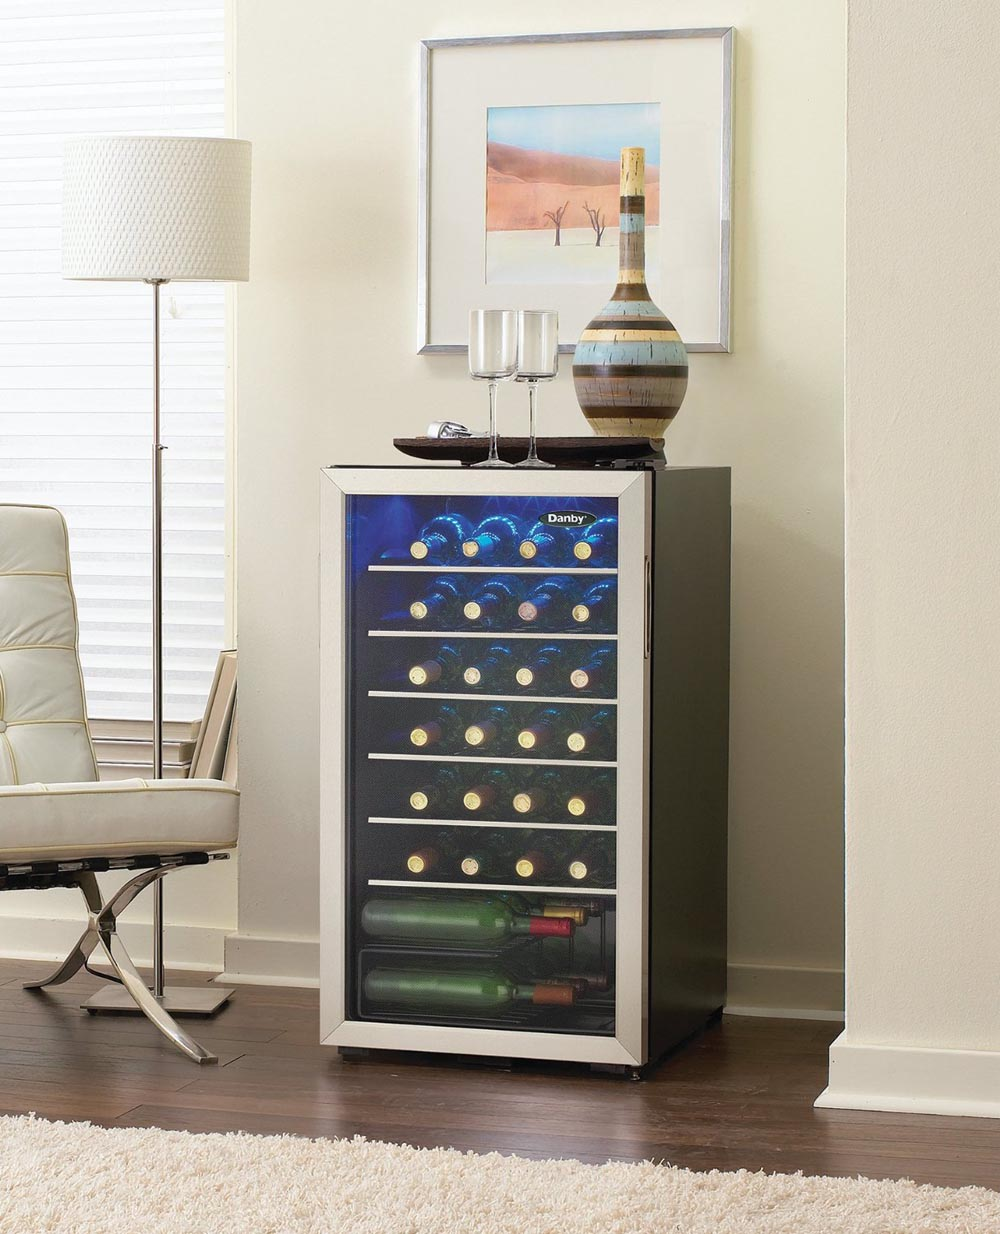 Danby Dwc93blsdb 36 Bottle Wine Cooler Freestanding Wine